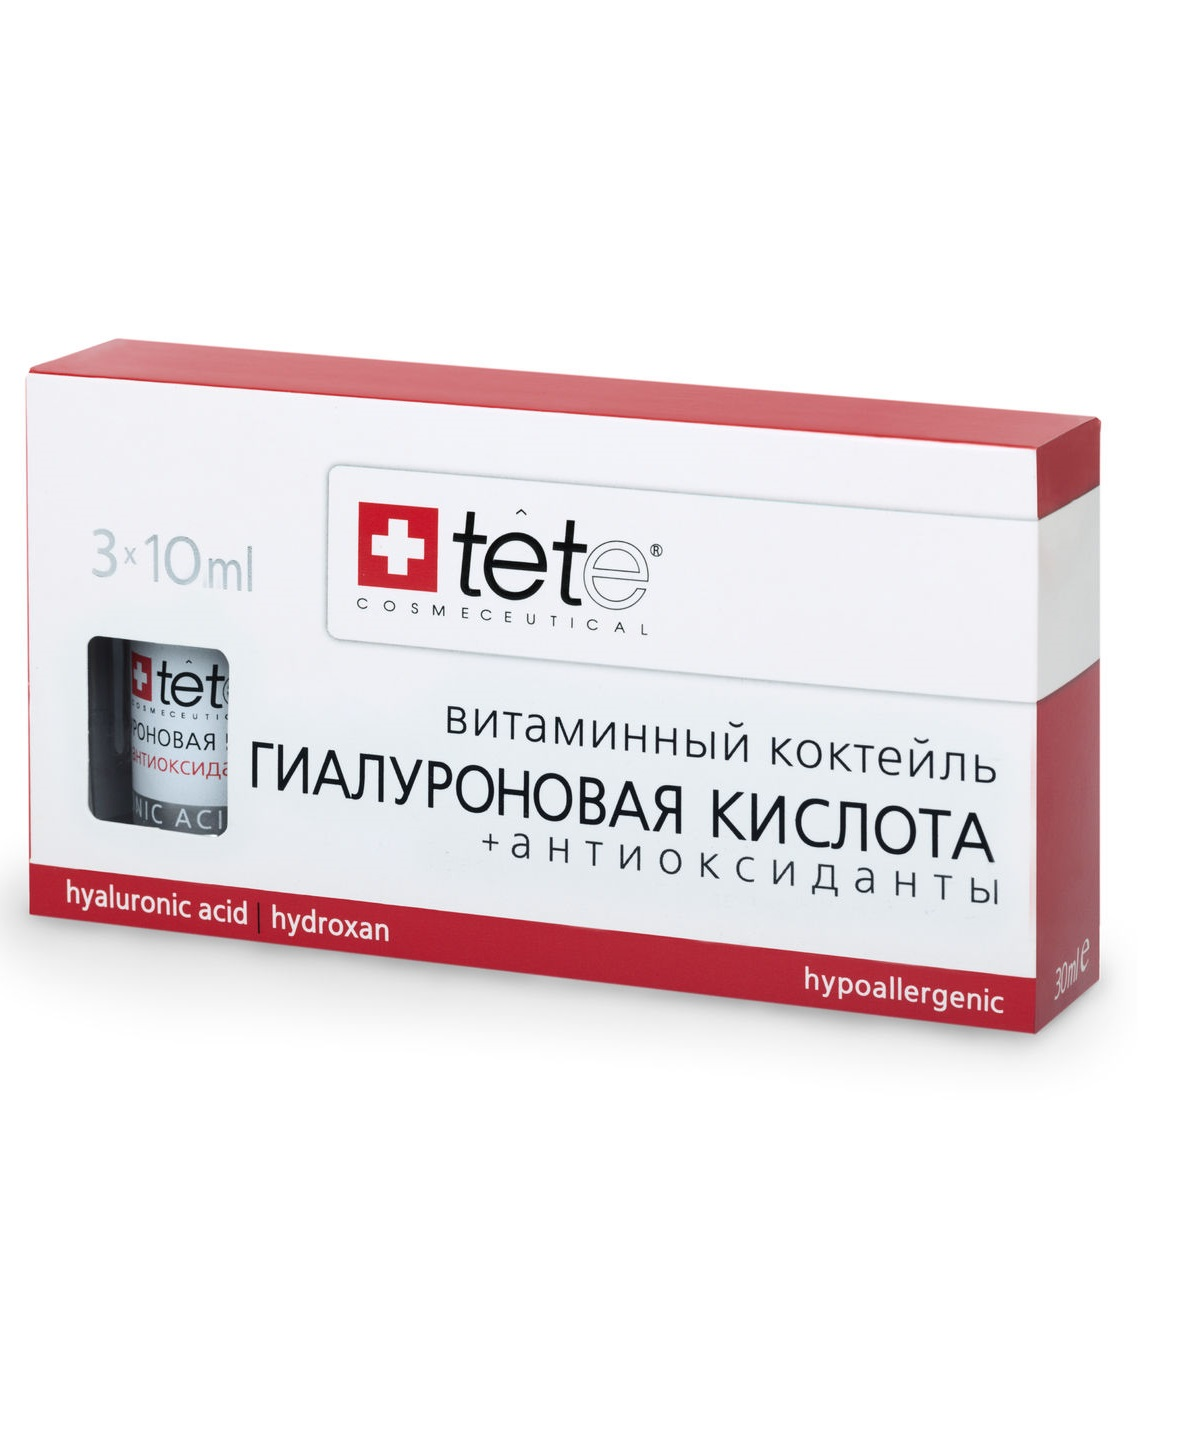 Гиалуроновая кислота с антиоксидантами TETe Cosmeceutical Hyaluronic Acid and Antioxidants